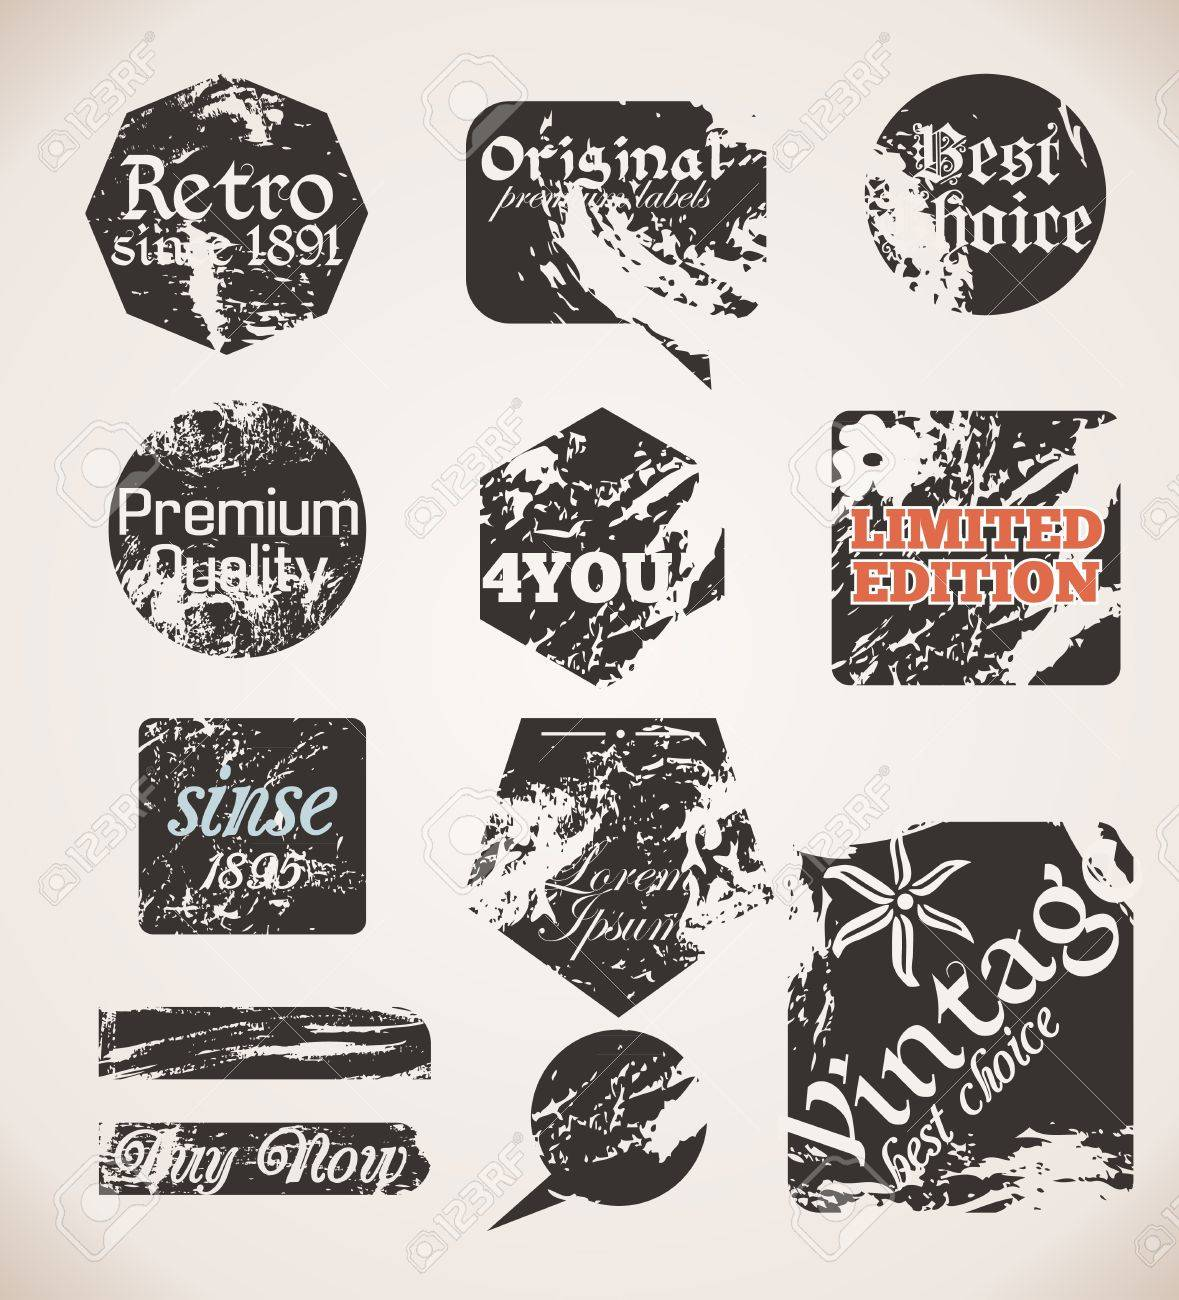 Vintage Labels Old Paper Textures Stock Vector - 15569980